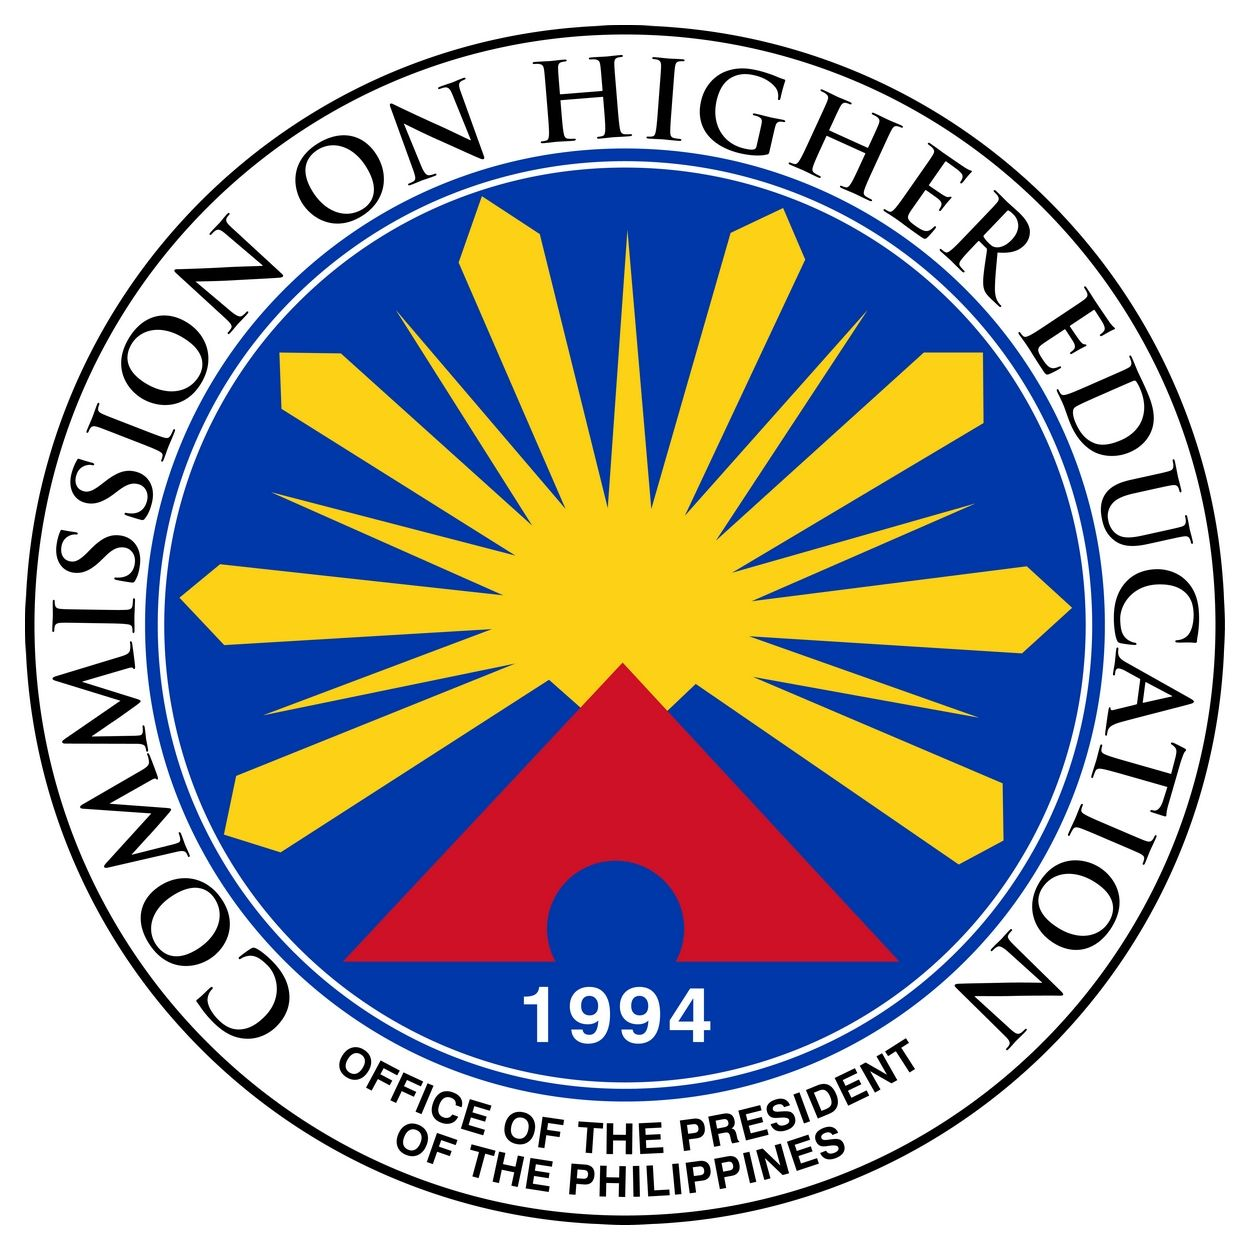 Ched Logo Commission On Higher Education Higher Education